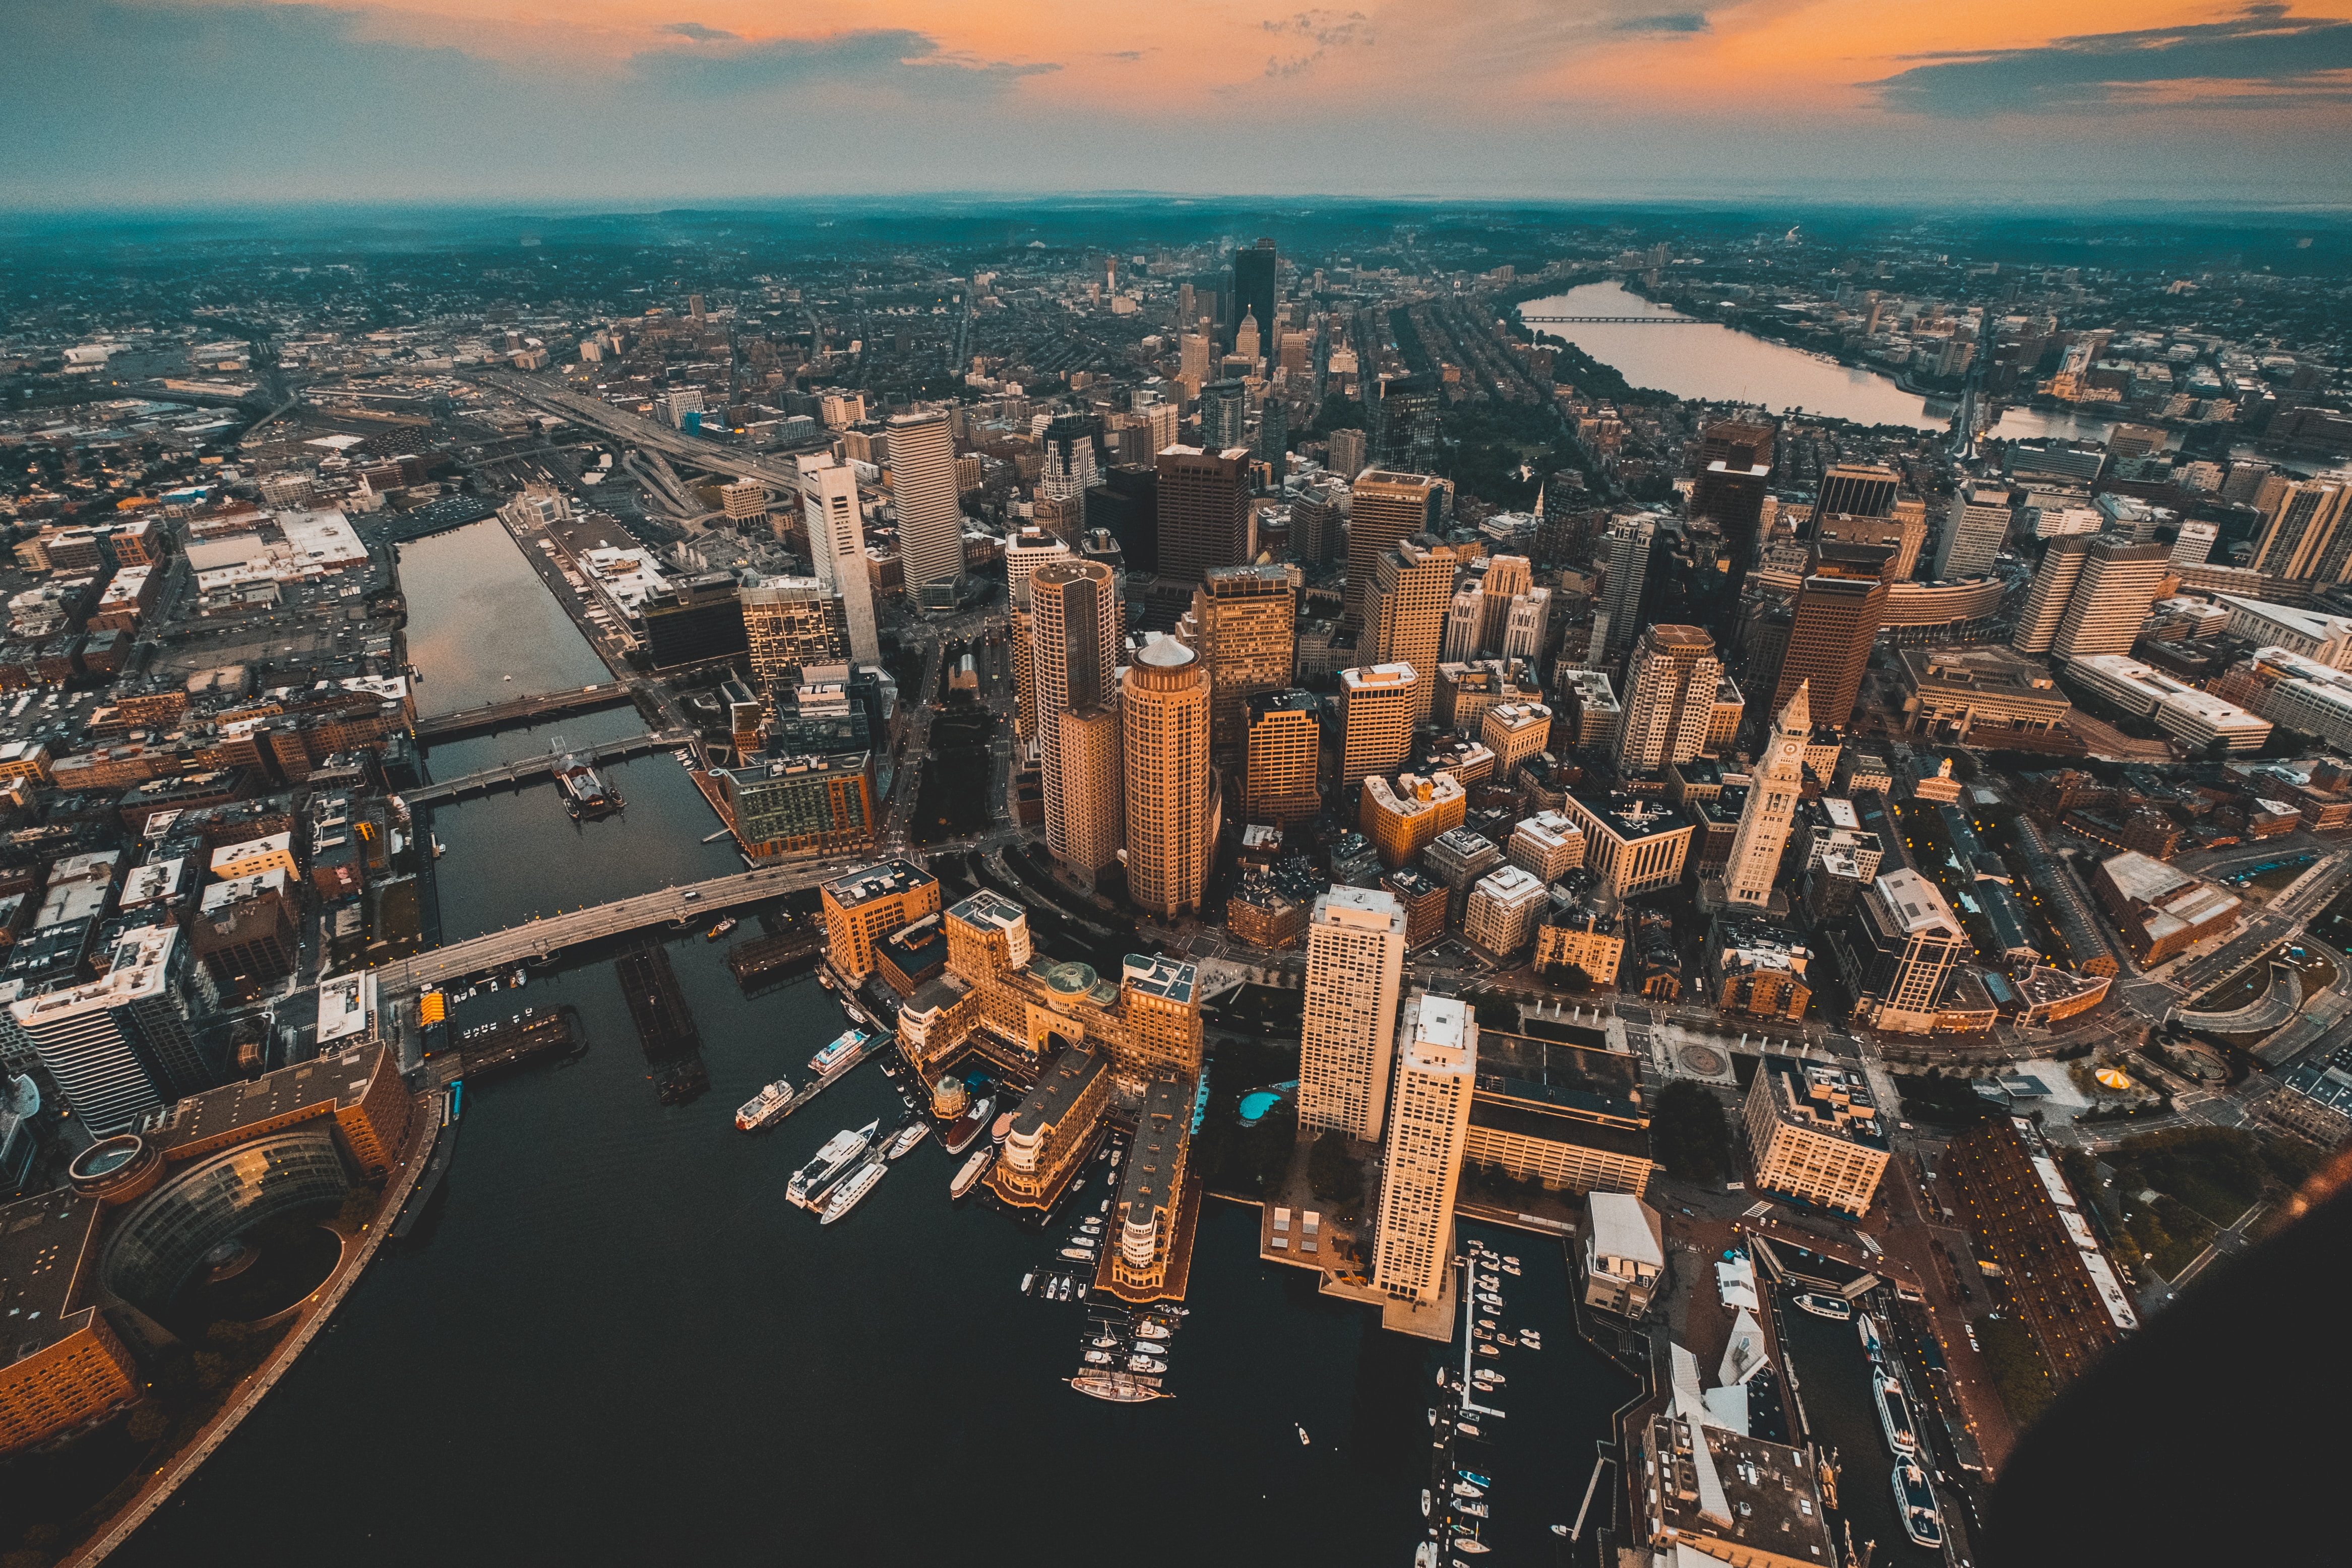 Check out: Boston is more than just its rich culture and historic sites